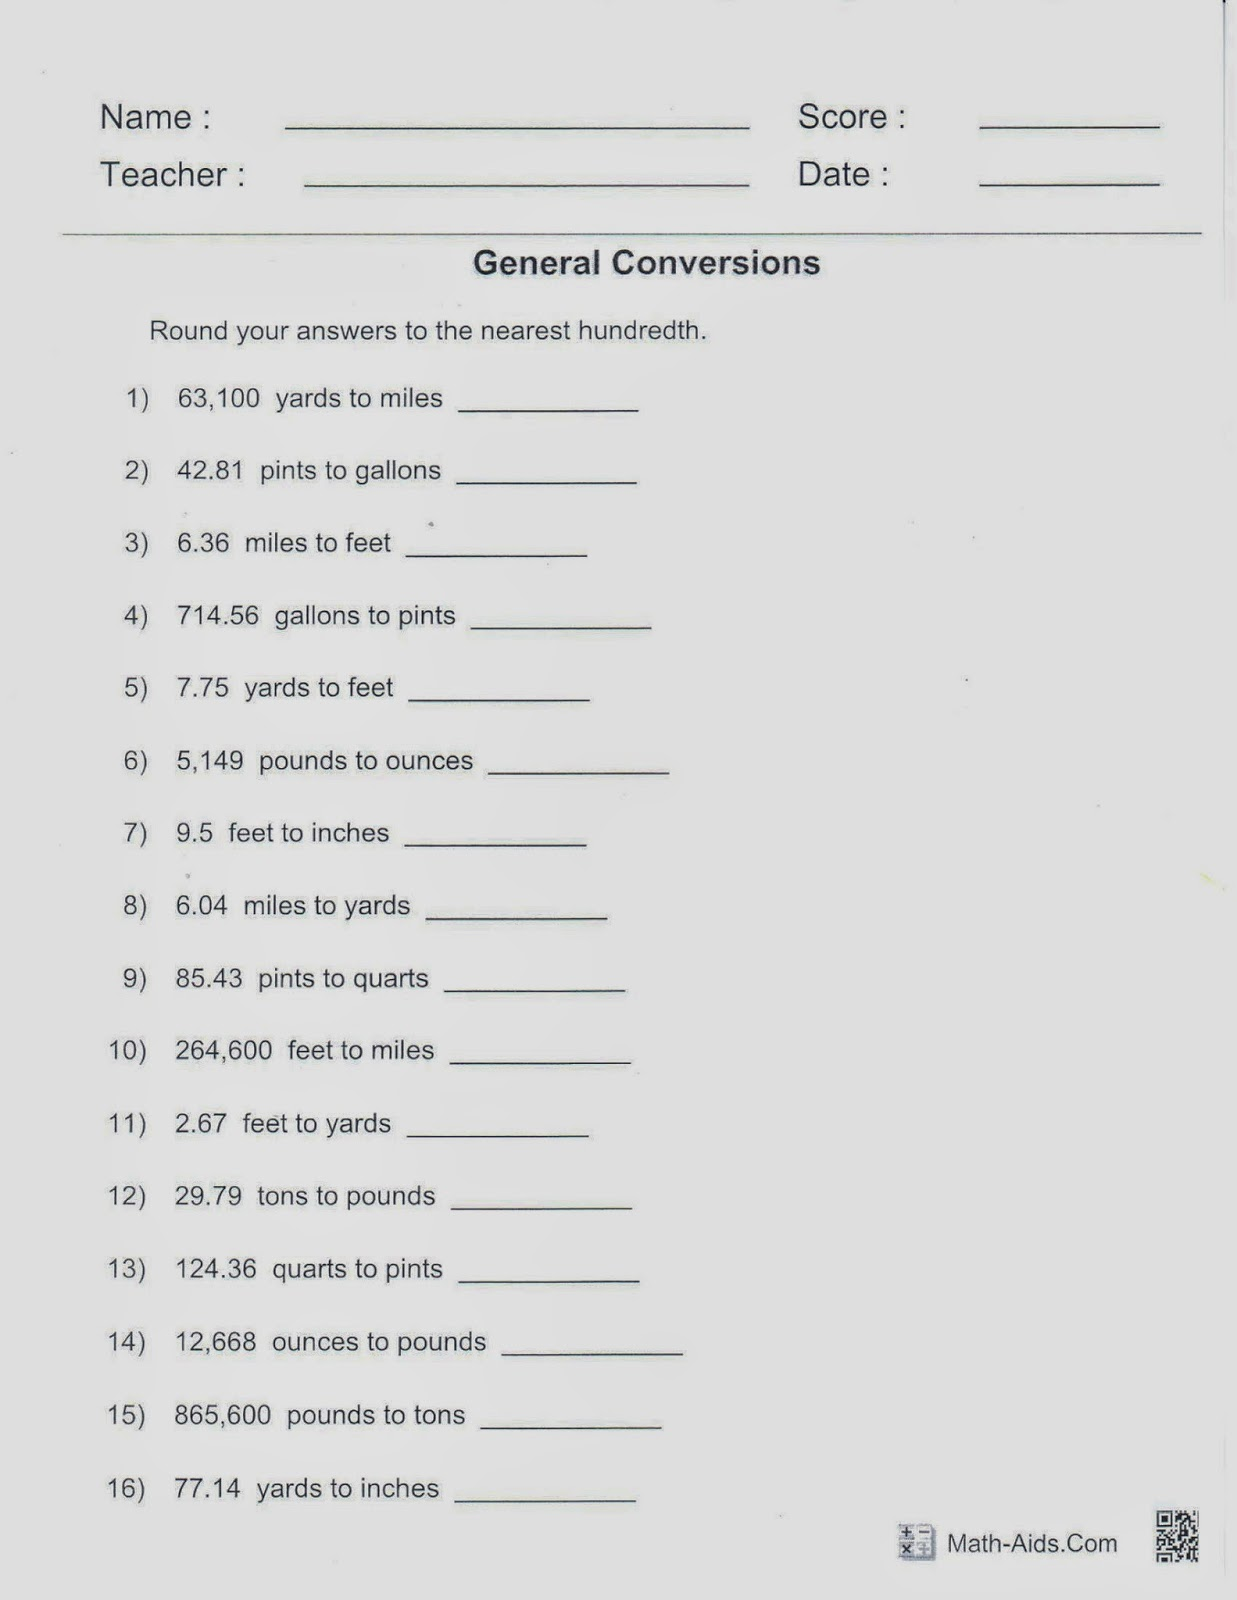 Worksheet Math Aids Rounding Worksheet Fun Worksheet